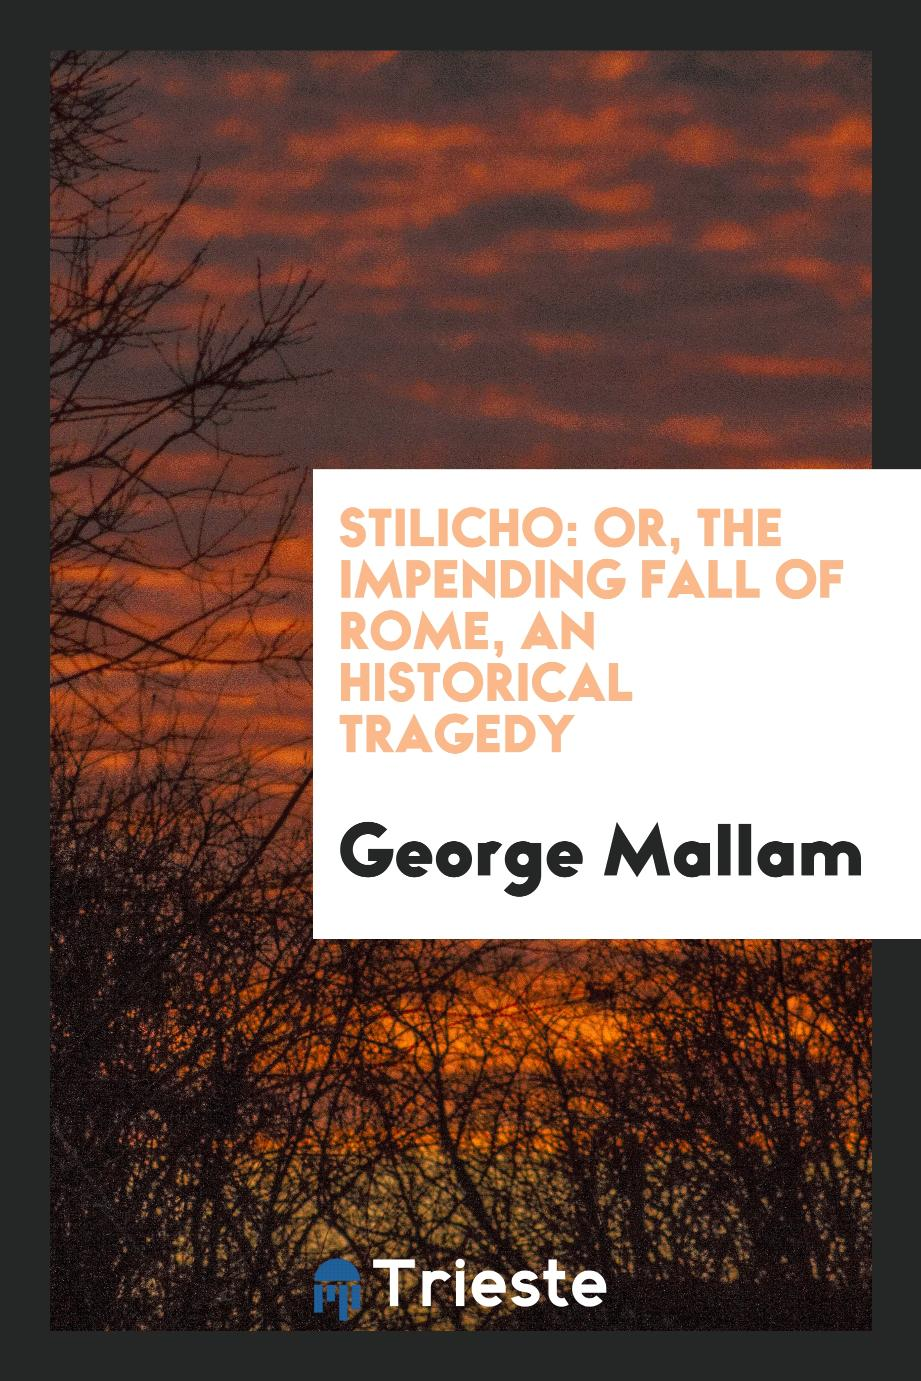 Stilicho: Or, the Impending Fall of Rome, an Historical Tragedy